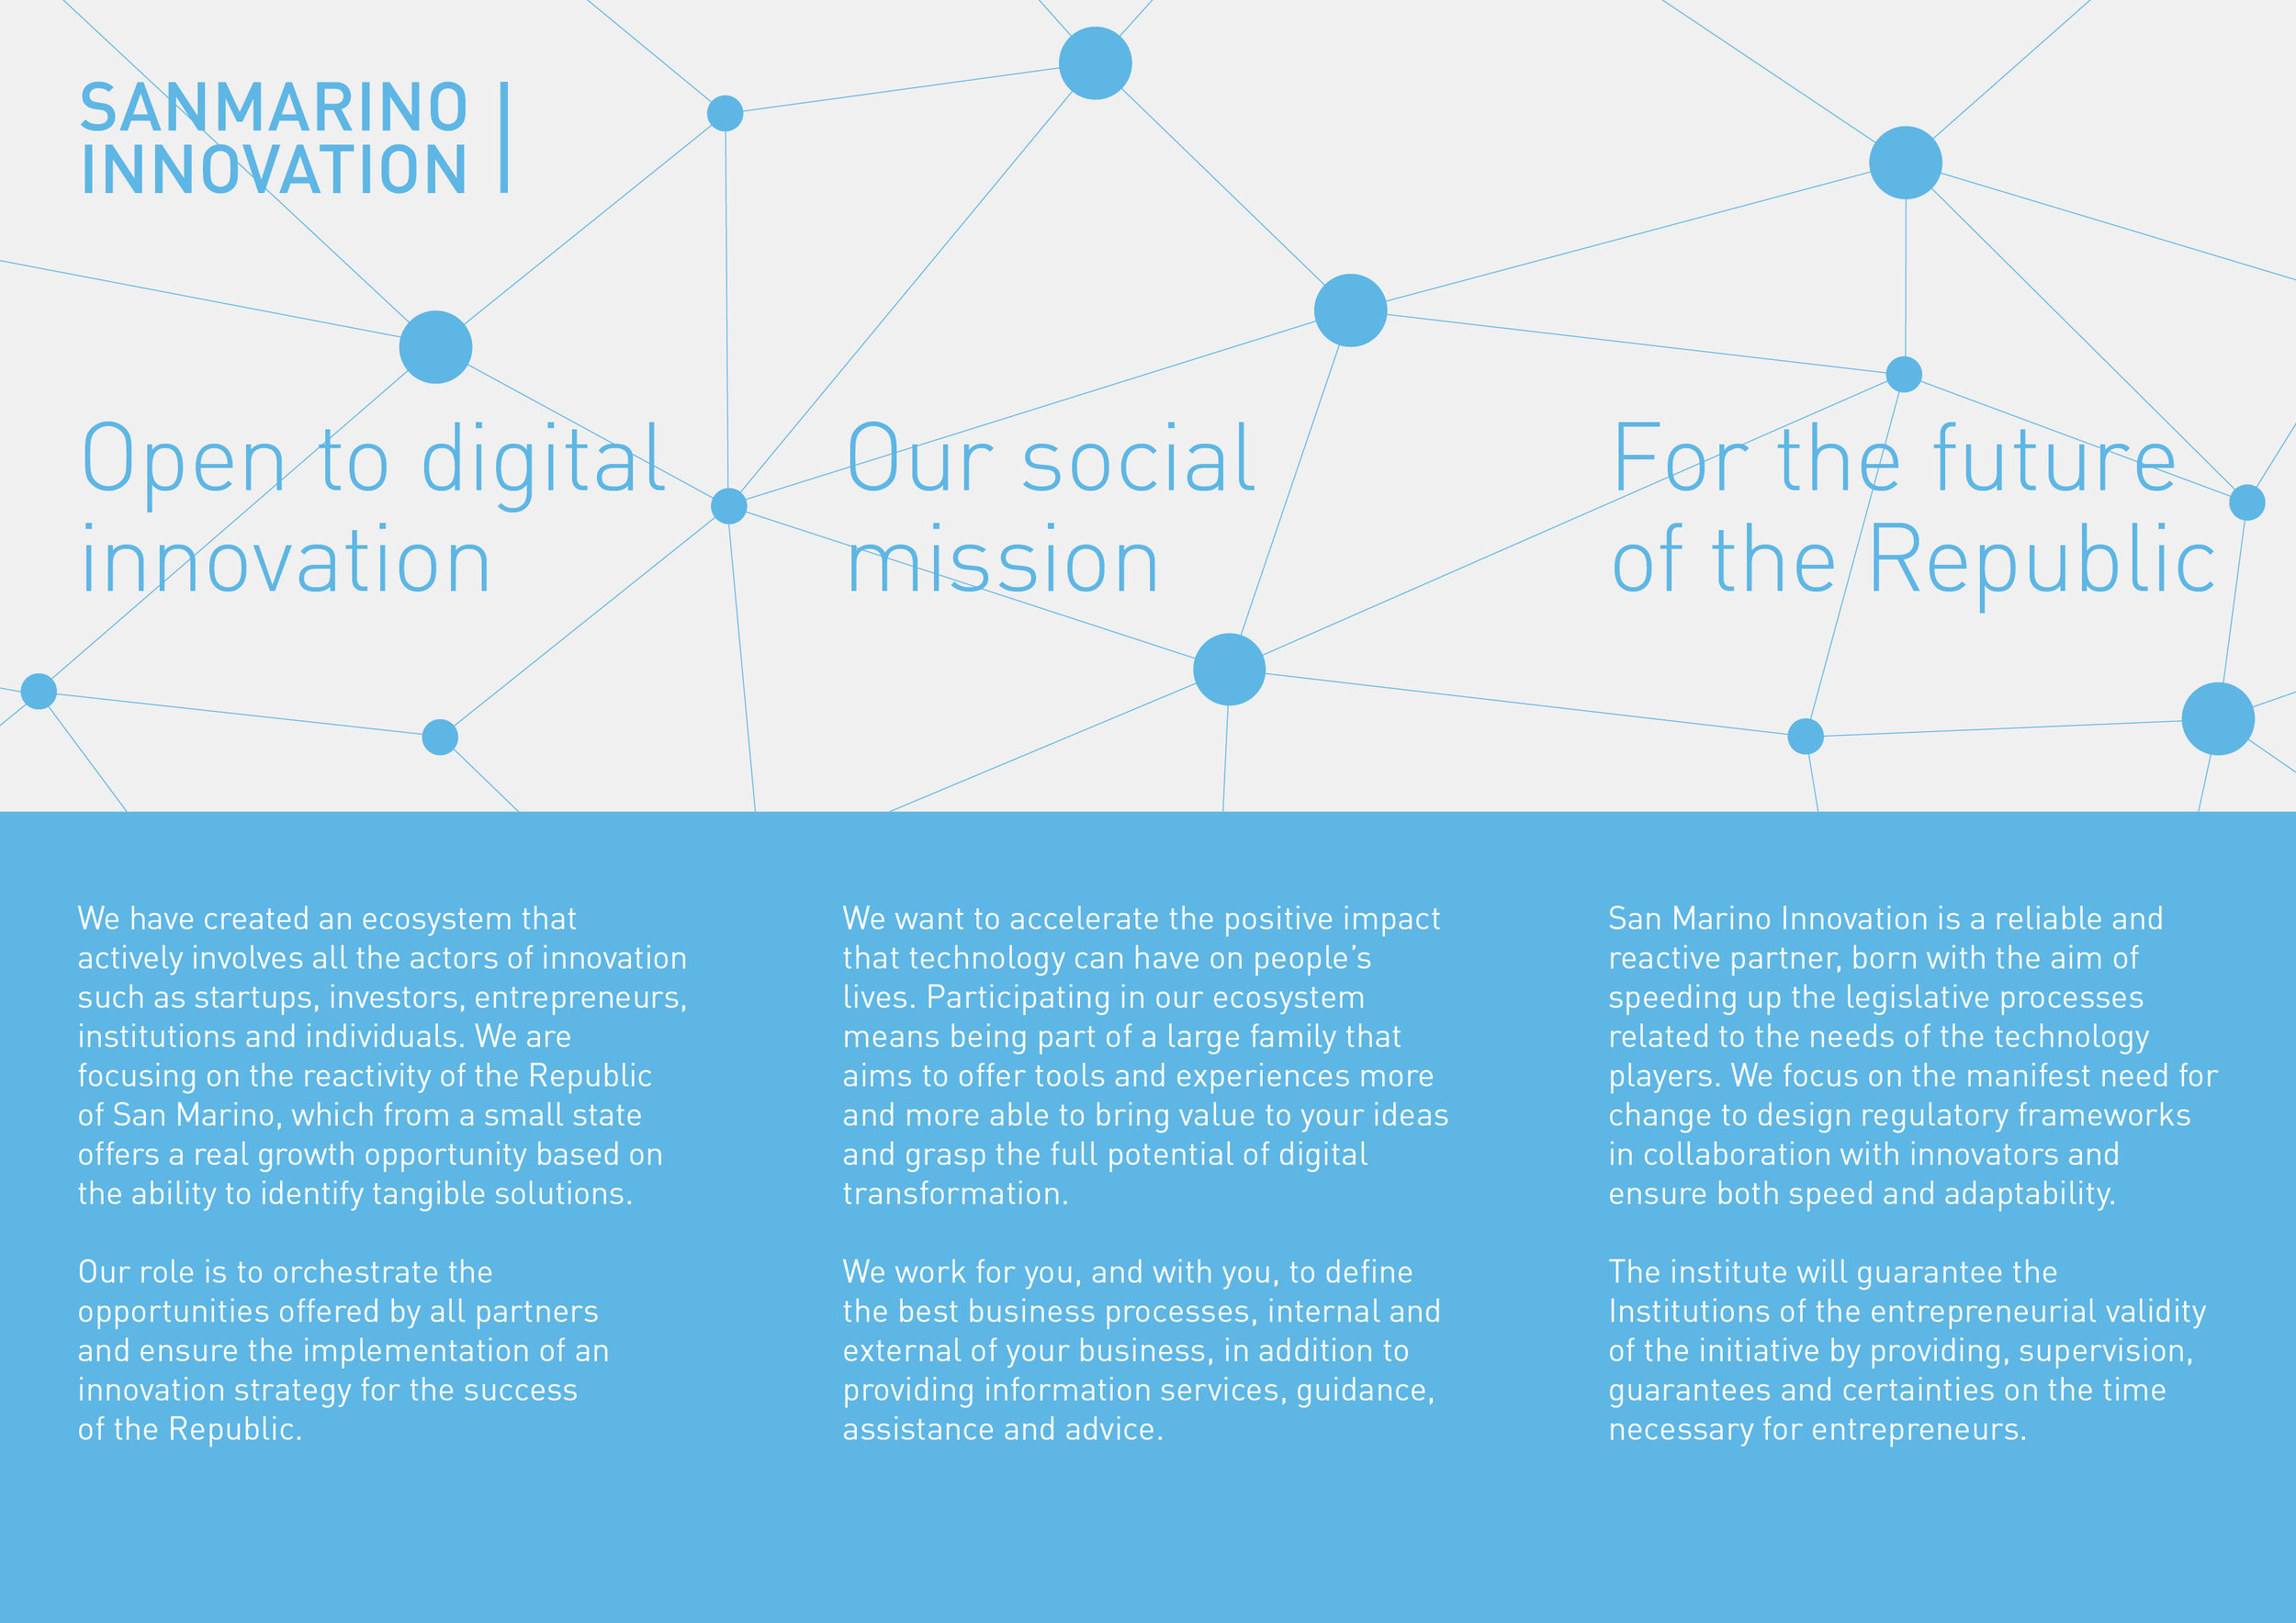 Sanmarino Innovation leaflet6.jpg